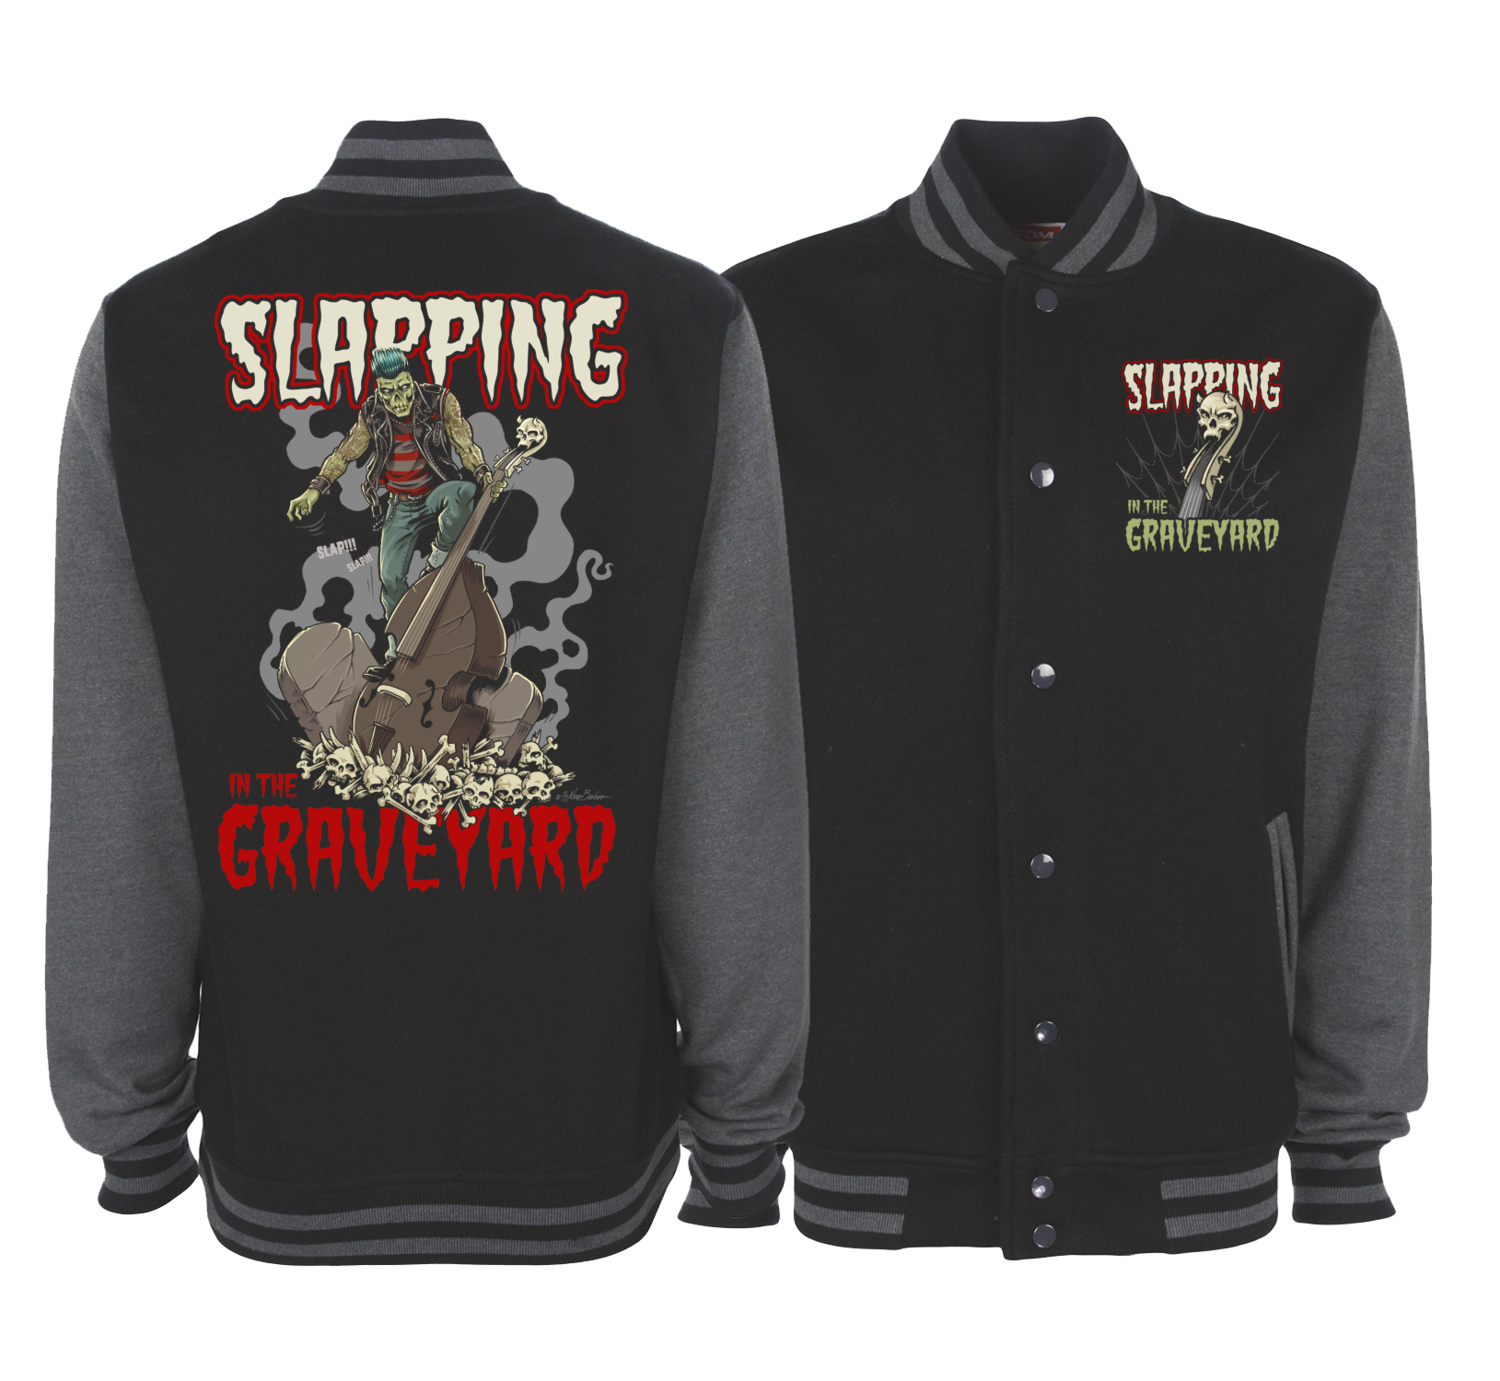 SLAPPING IN THE GRAVEYARD VARSITY JACKET UNISEX BY NANO BARBERO